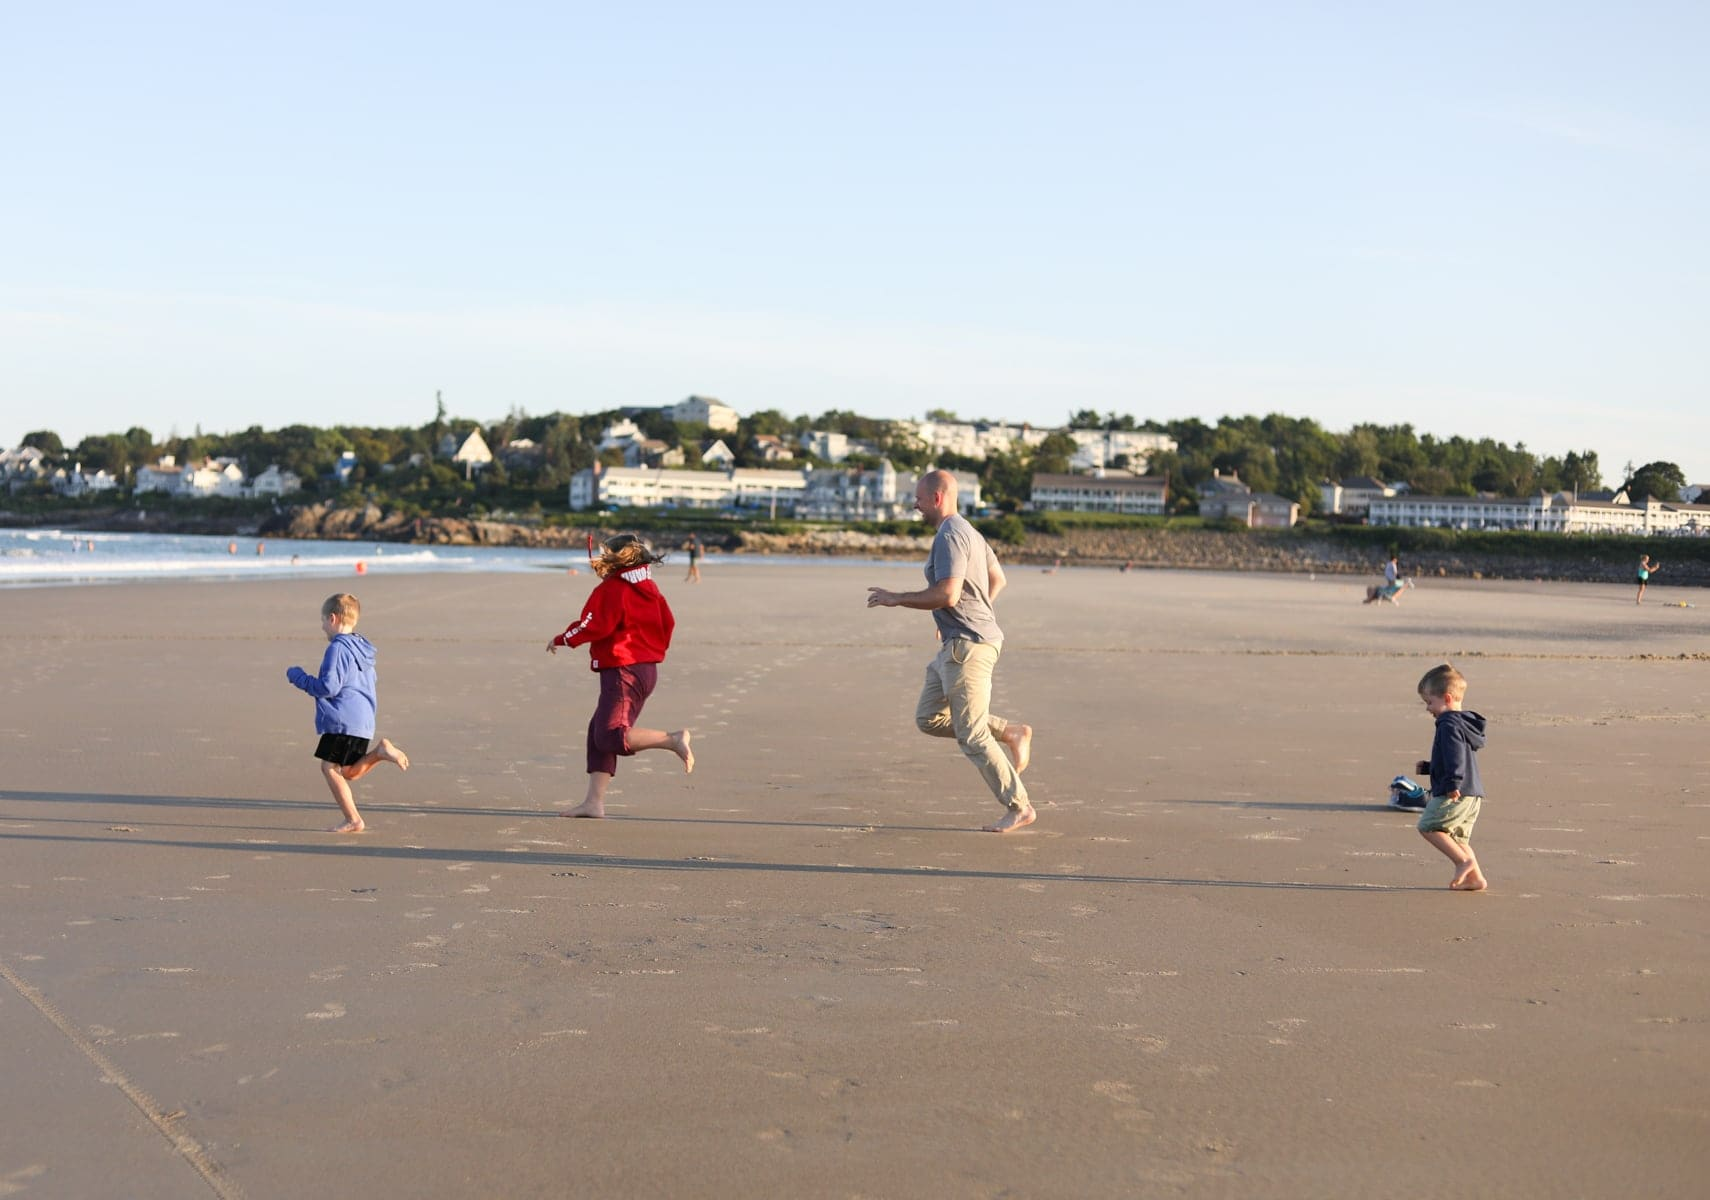 Gordon and the kids running at the beach